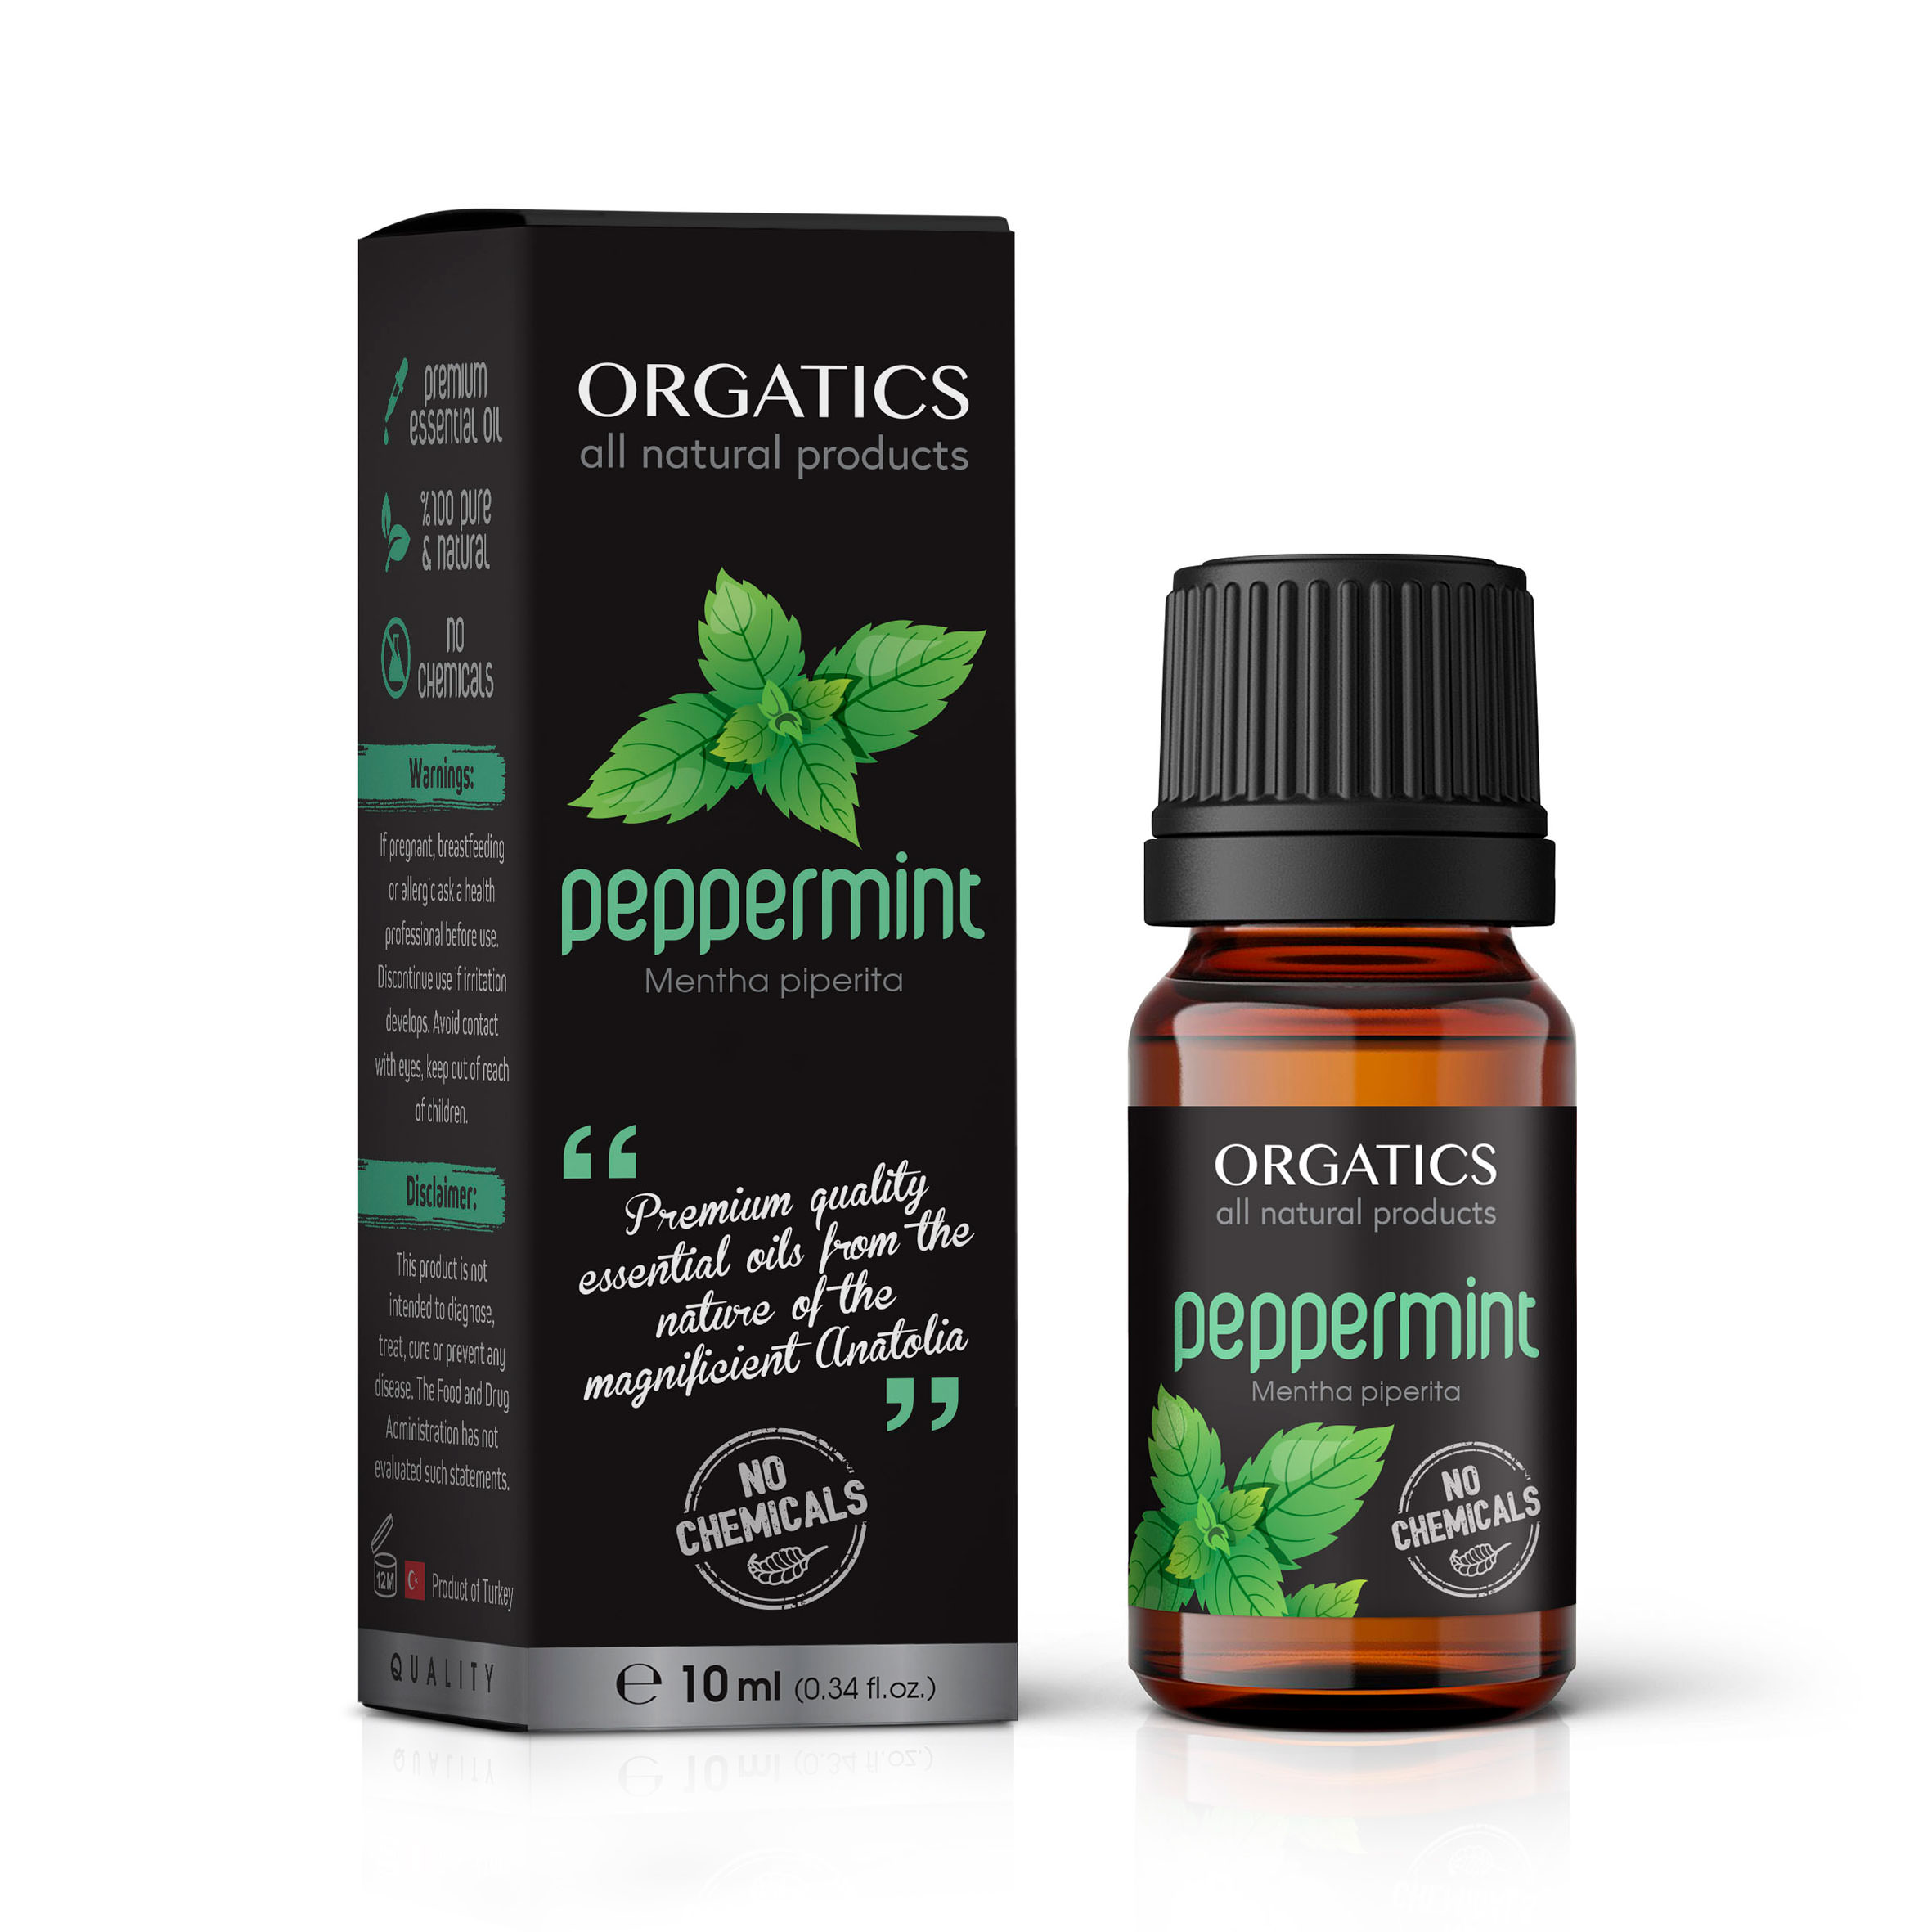 ORGATICS Peppermint Oil Bottle with Box